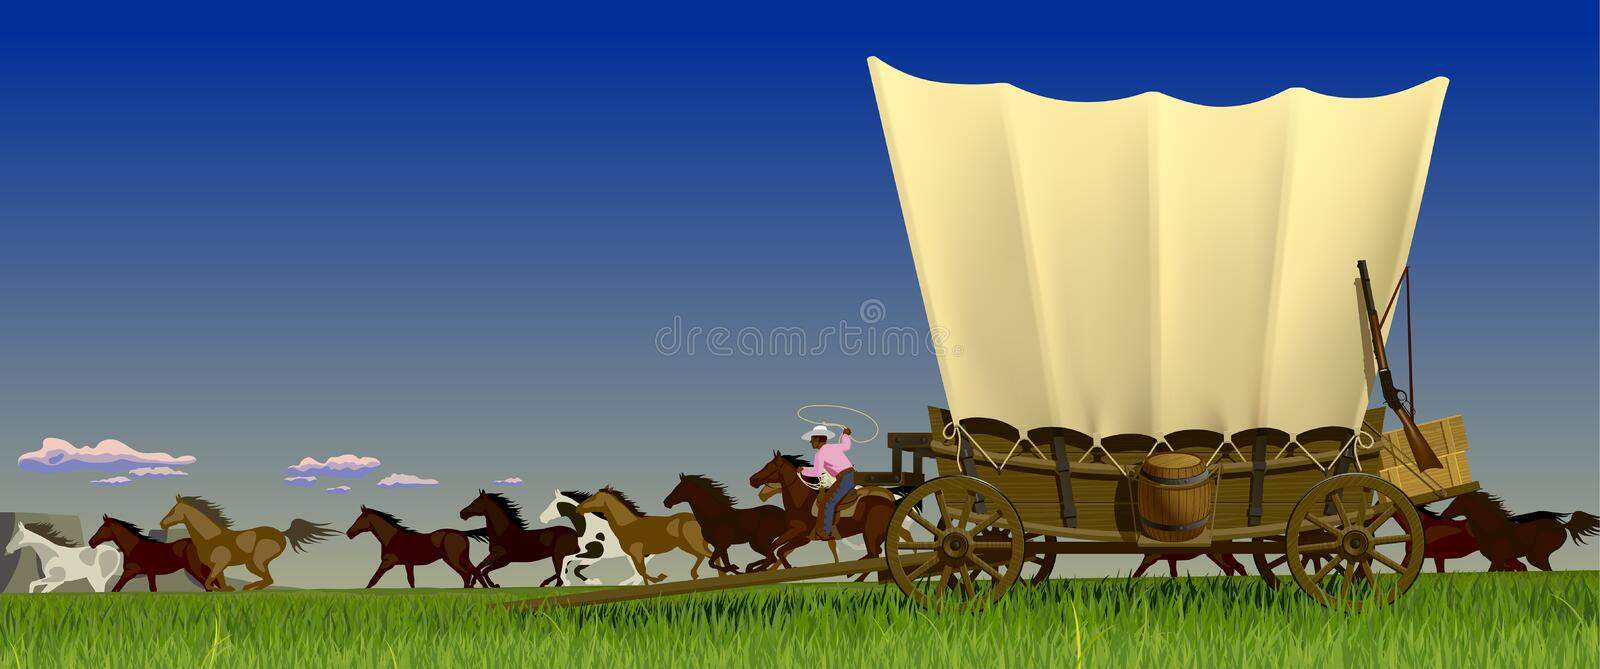 Wild West prairie landscape with covered wagon and flock of horses. Vector illustration vector illustration